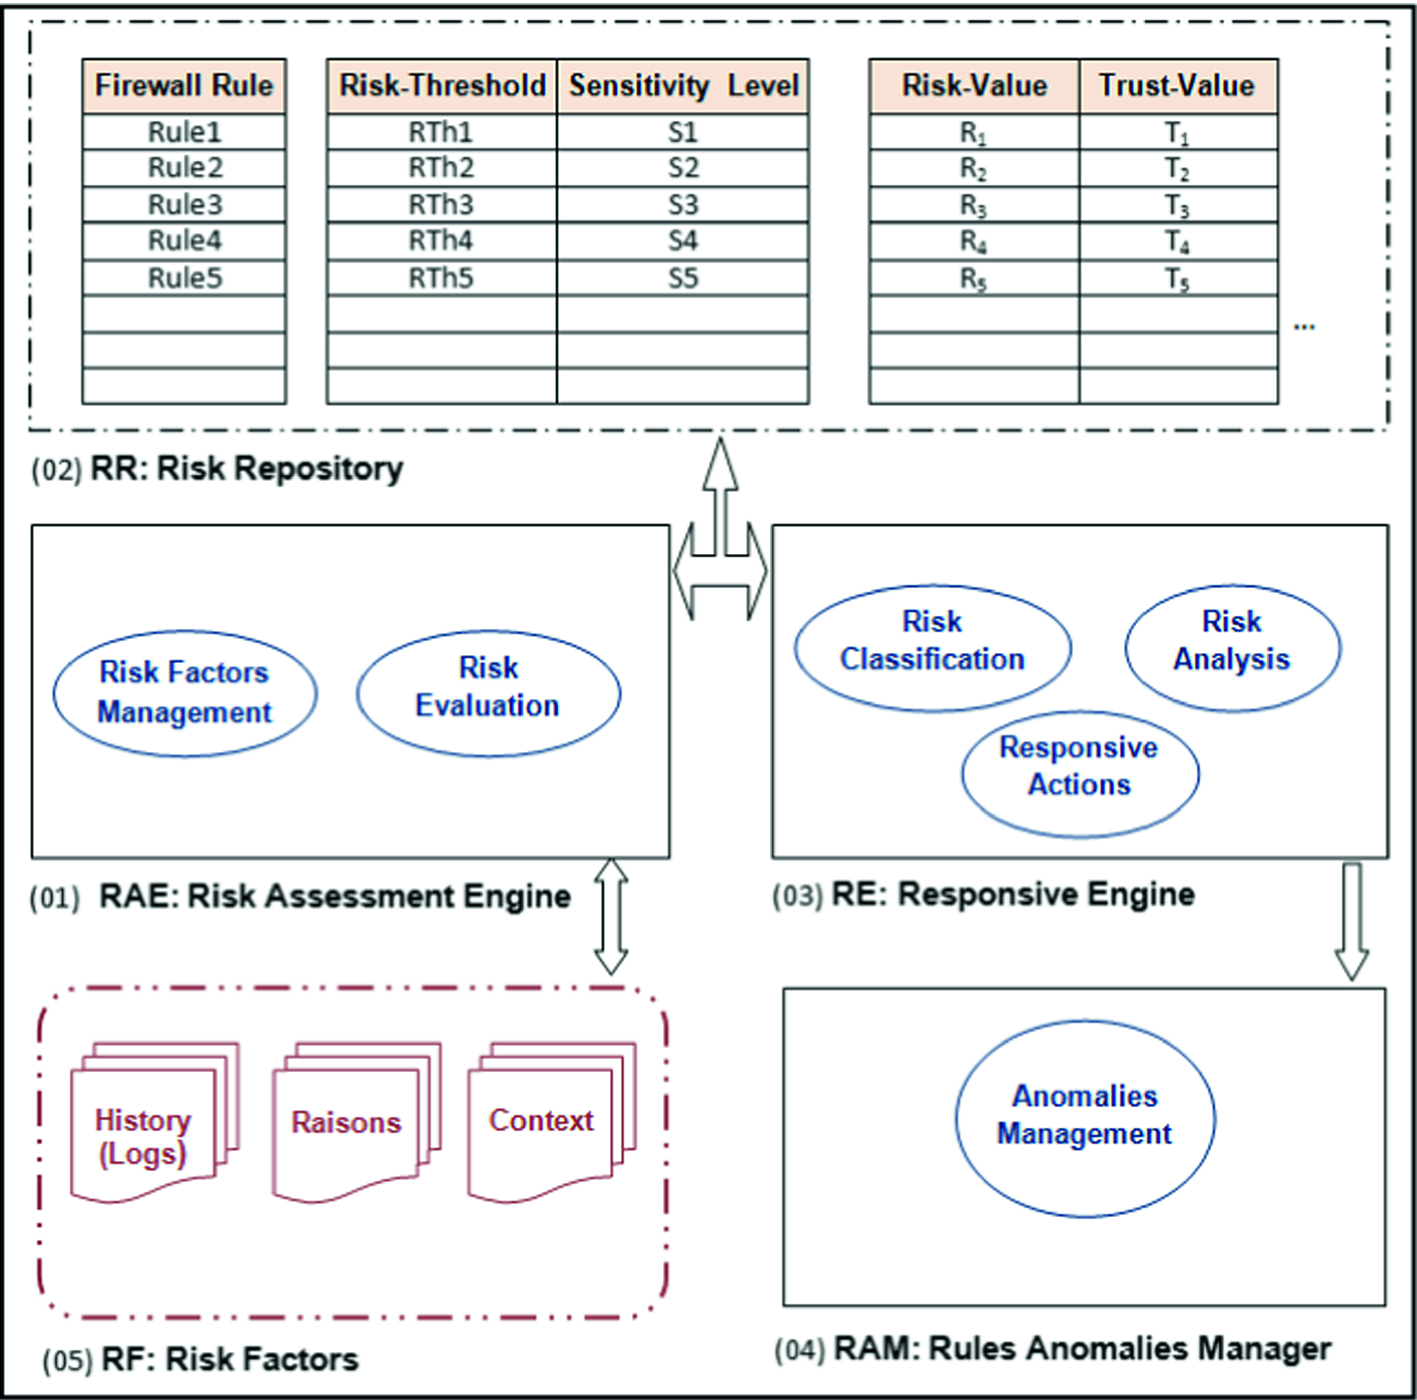 A Novel Concept of Firewall-Filtering Service Based on Rules